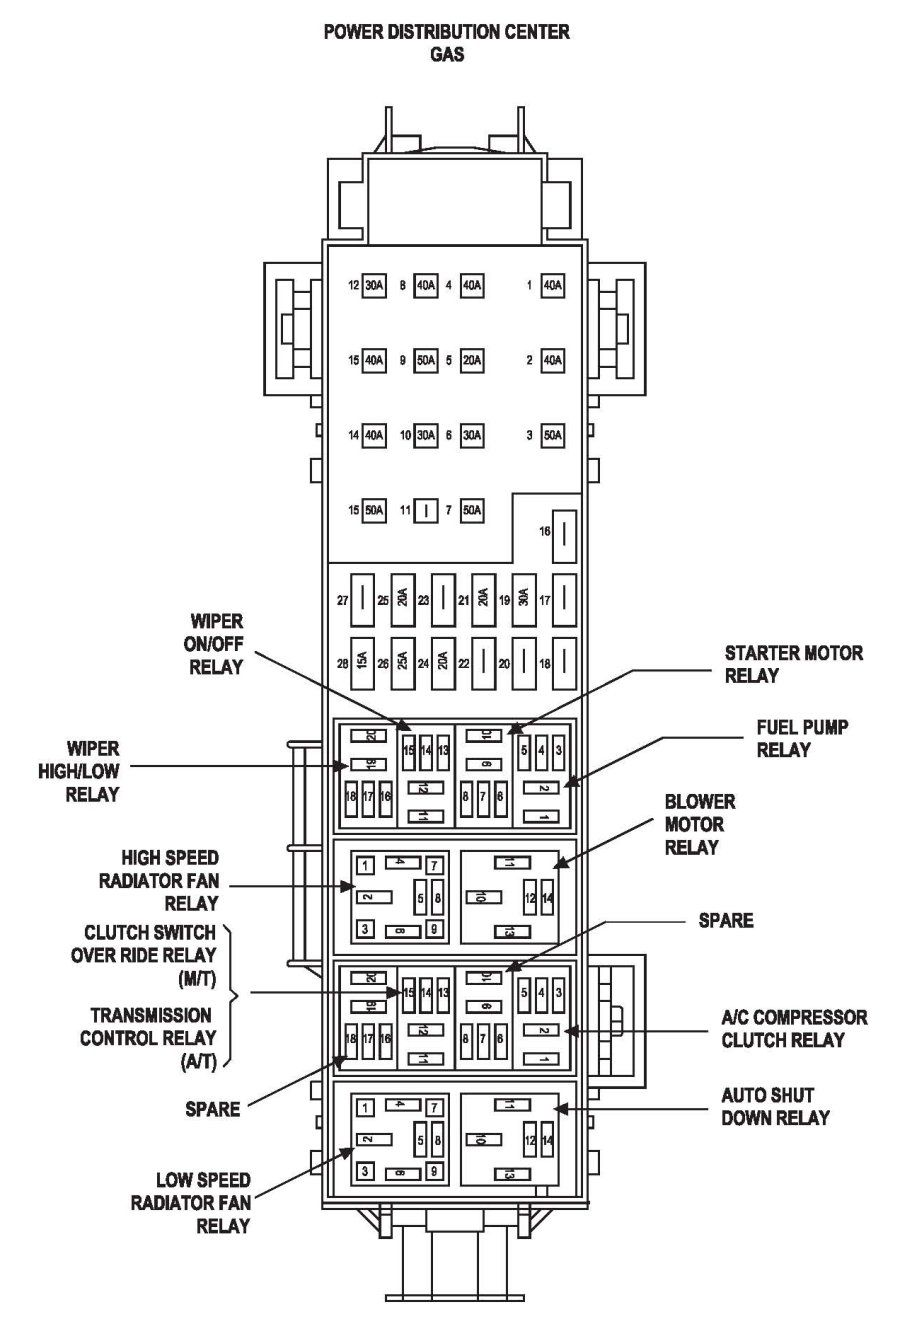 Liberty Fuse Box Starting Know About Wiring Diagram 2001 Eclipse Sunroof Jeep Image Details Rh Pinterest Com 2002